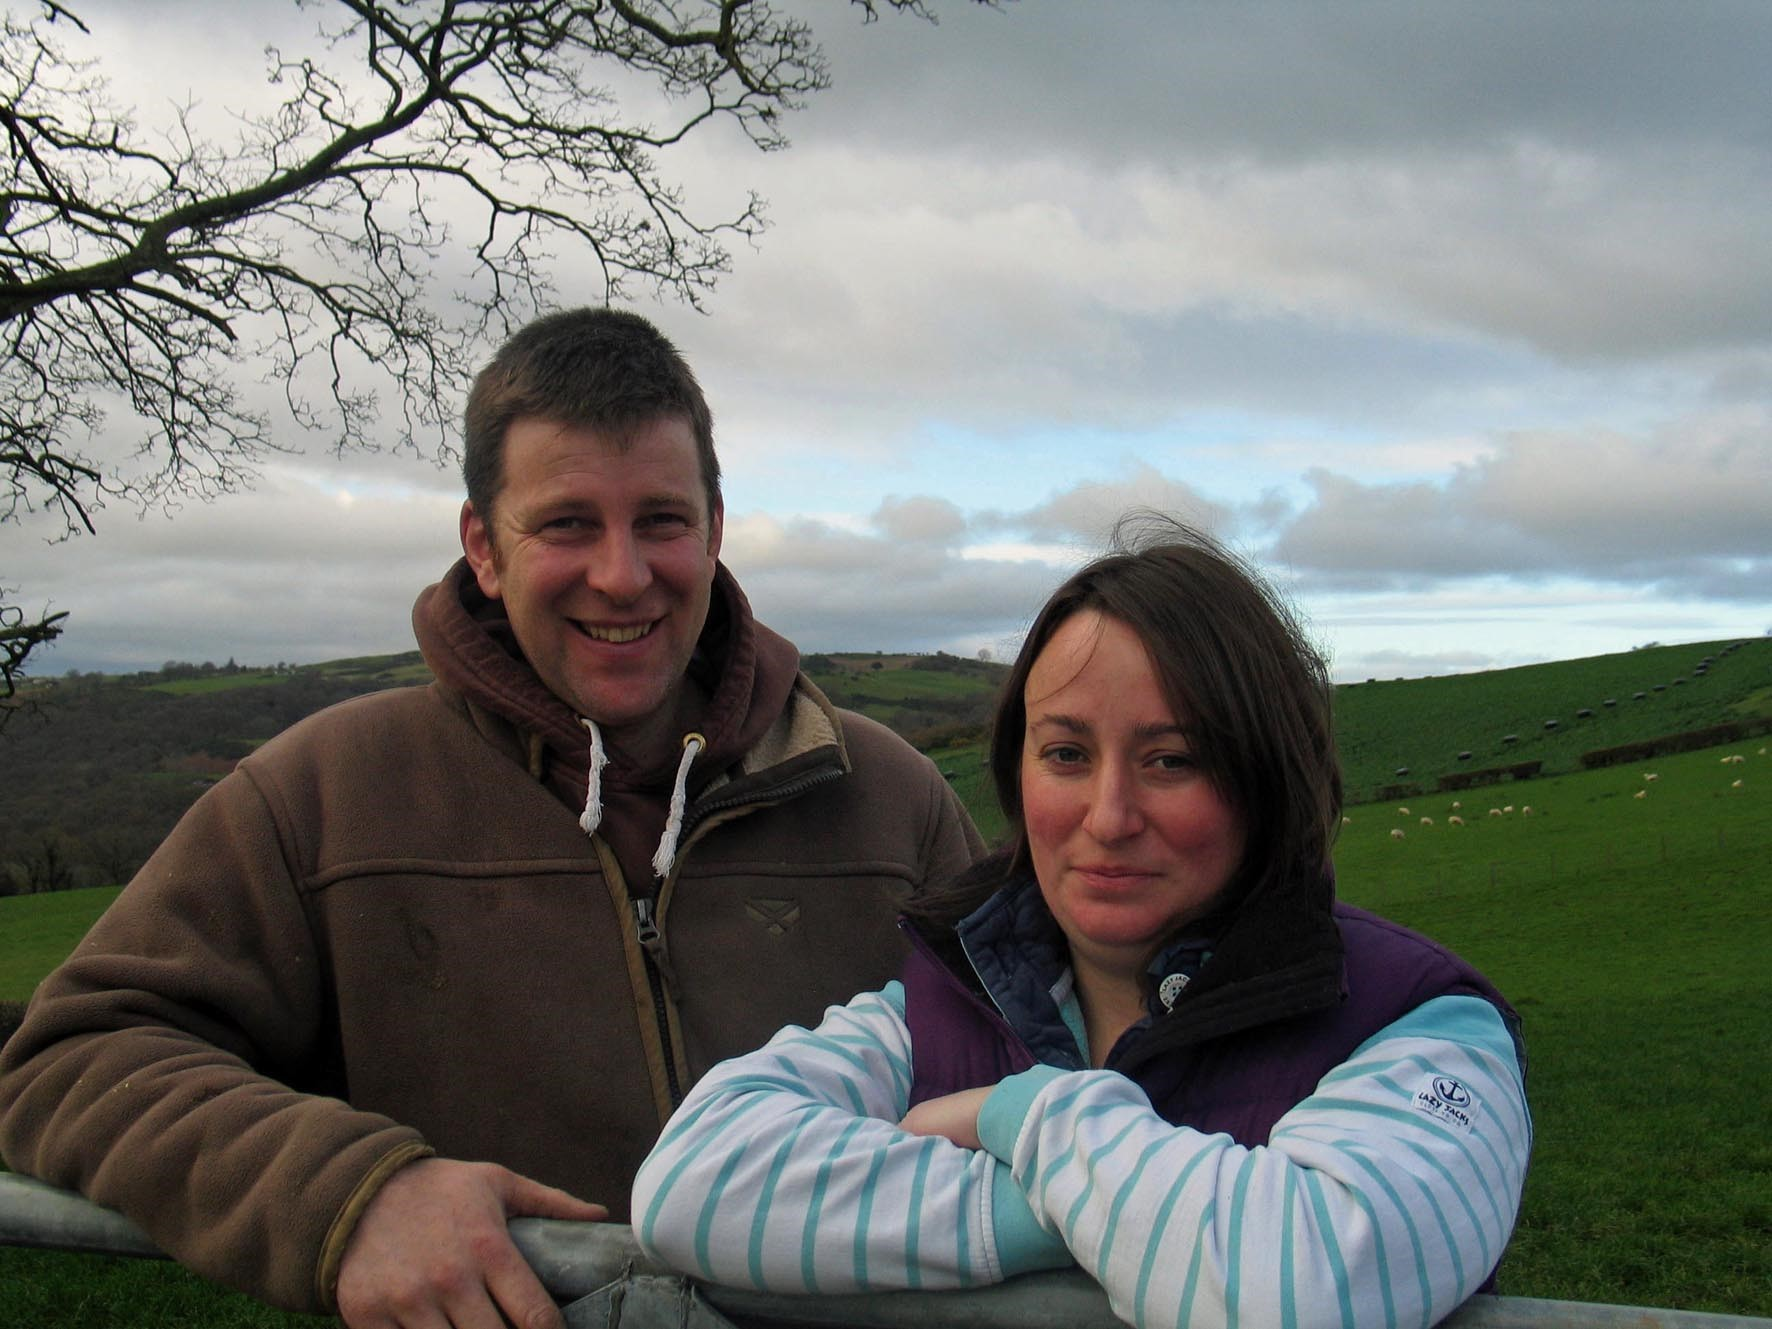 Fodder beet's high yield was a draw for Arthur and Menna Williams